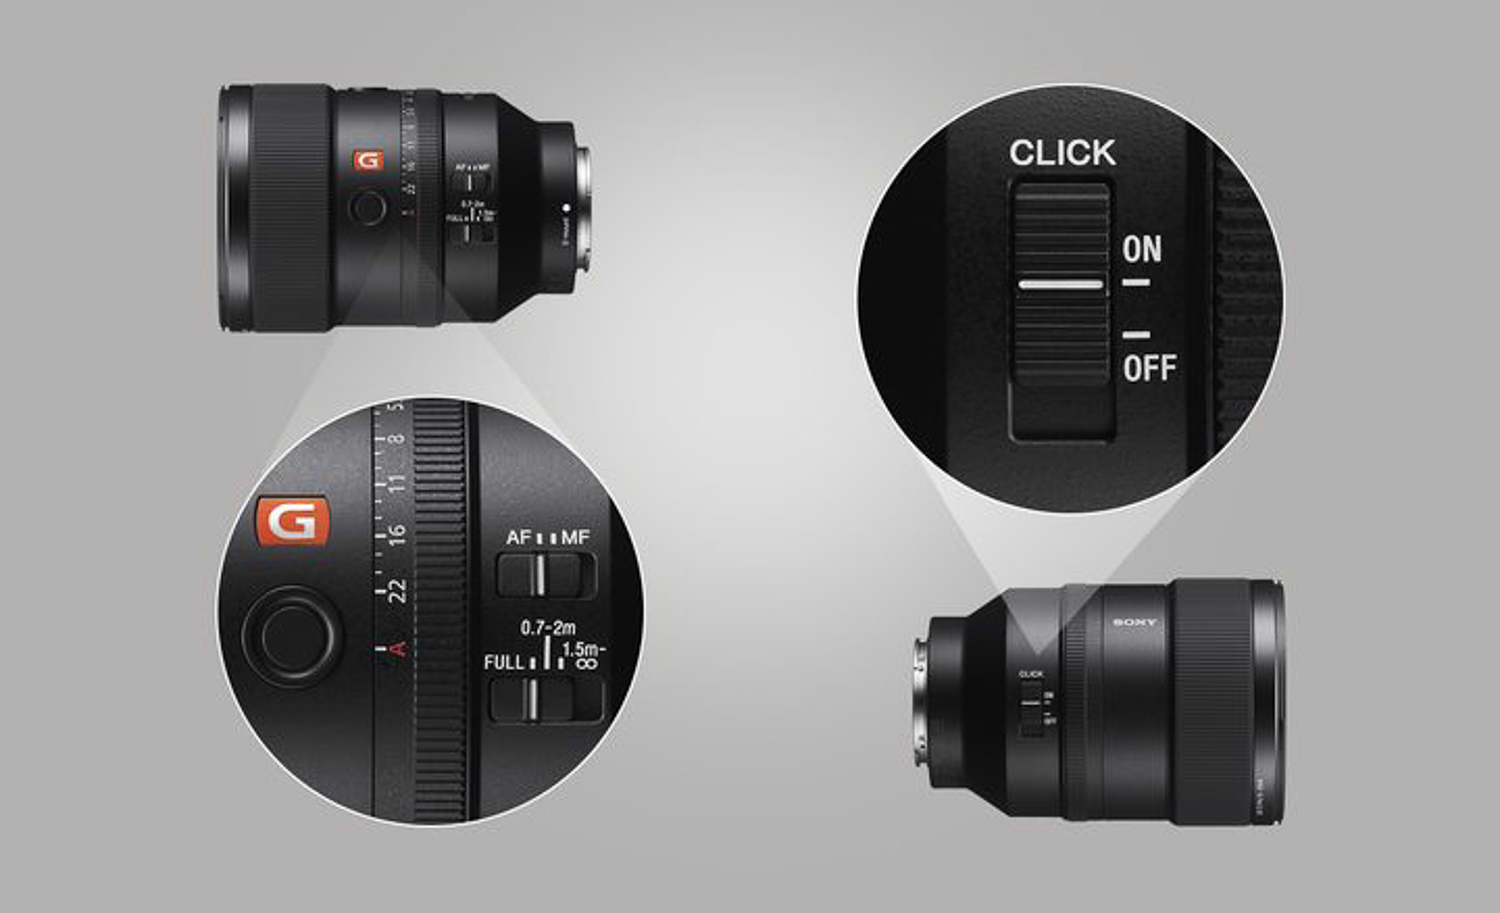 3 - Sony FE 135 mm F / 1.8 GM Lens Review